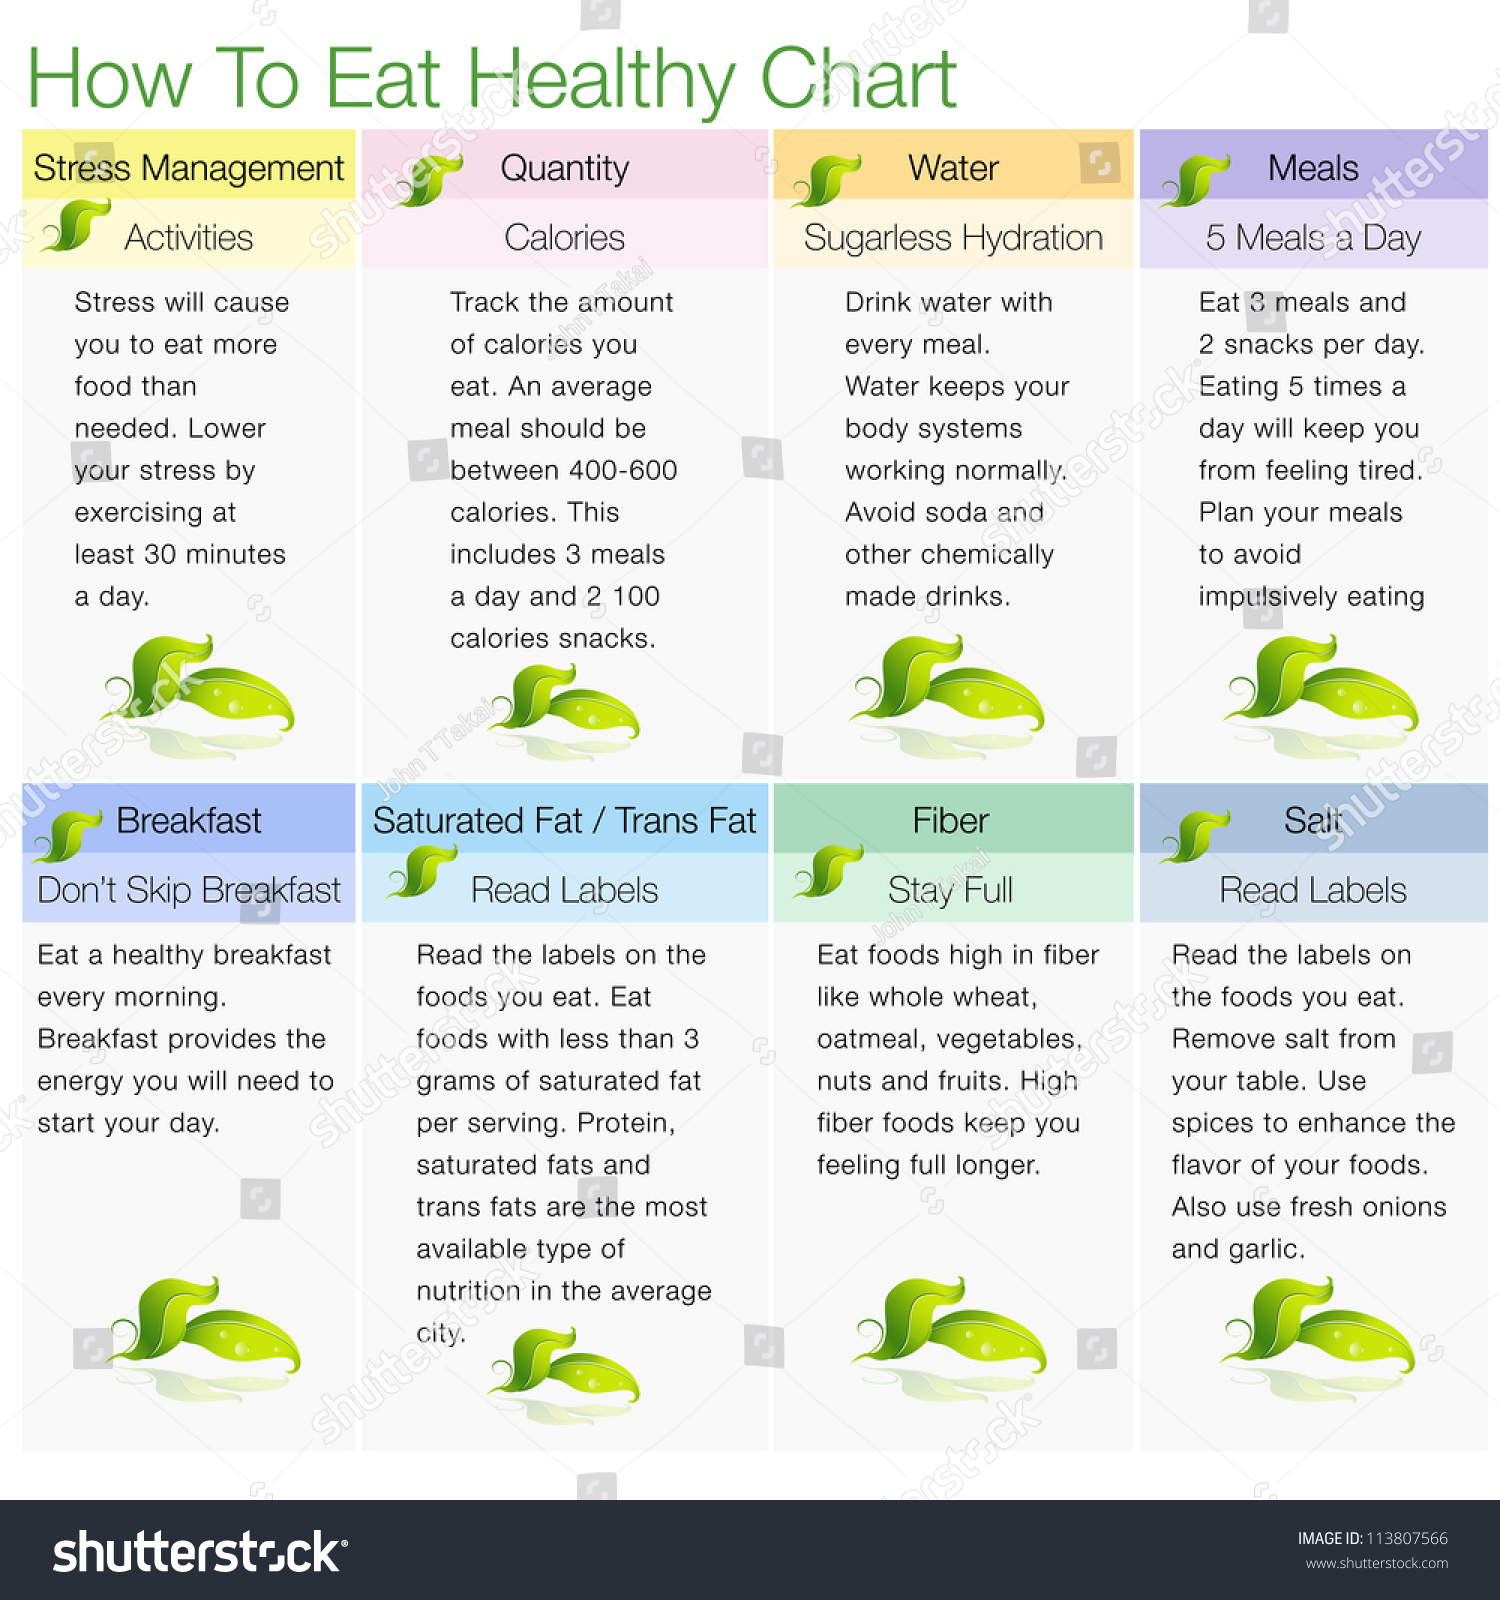 An Image Of A How To Eat Healthy Chart Image How Eat Healthy Chart Stock  Illustration